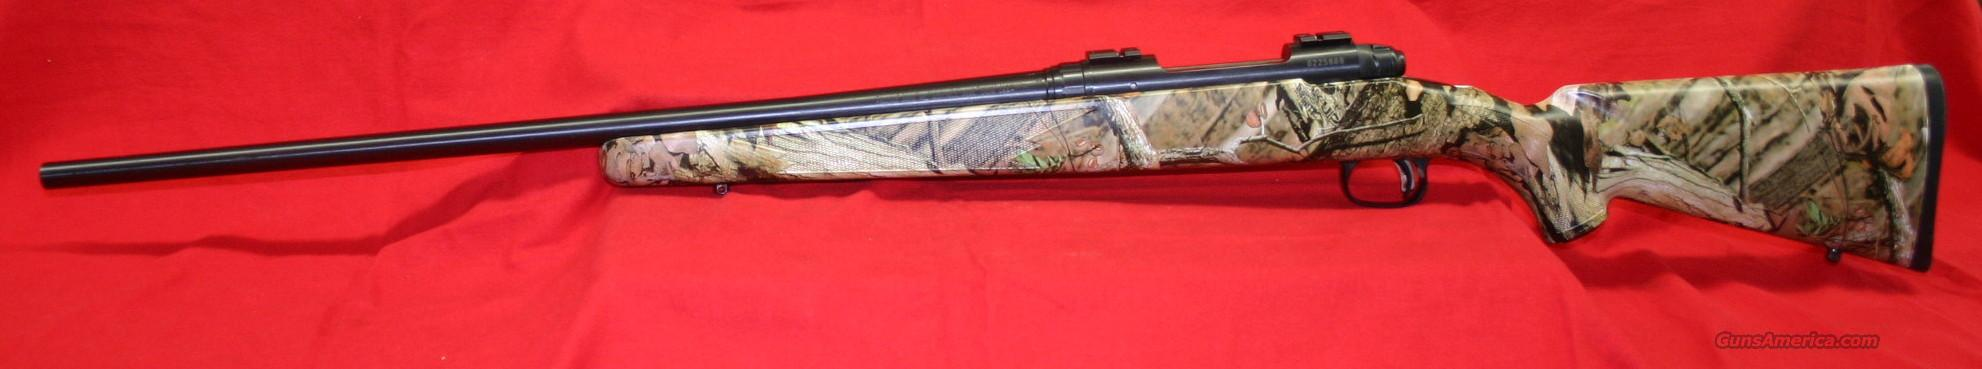 Savage 11 270WSM Camo  Guns > Rifles > Savage Rifles > Accutrigger Models > Sporting